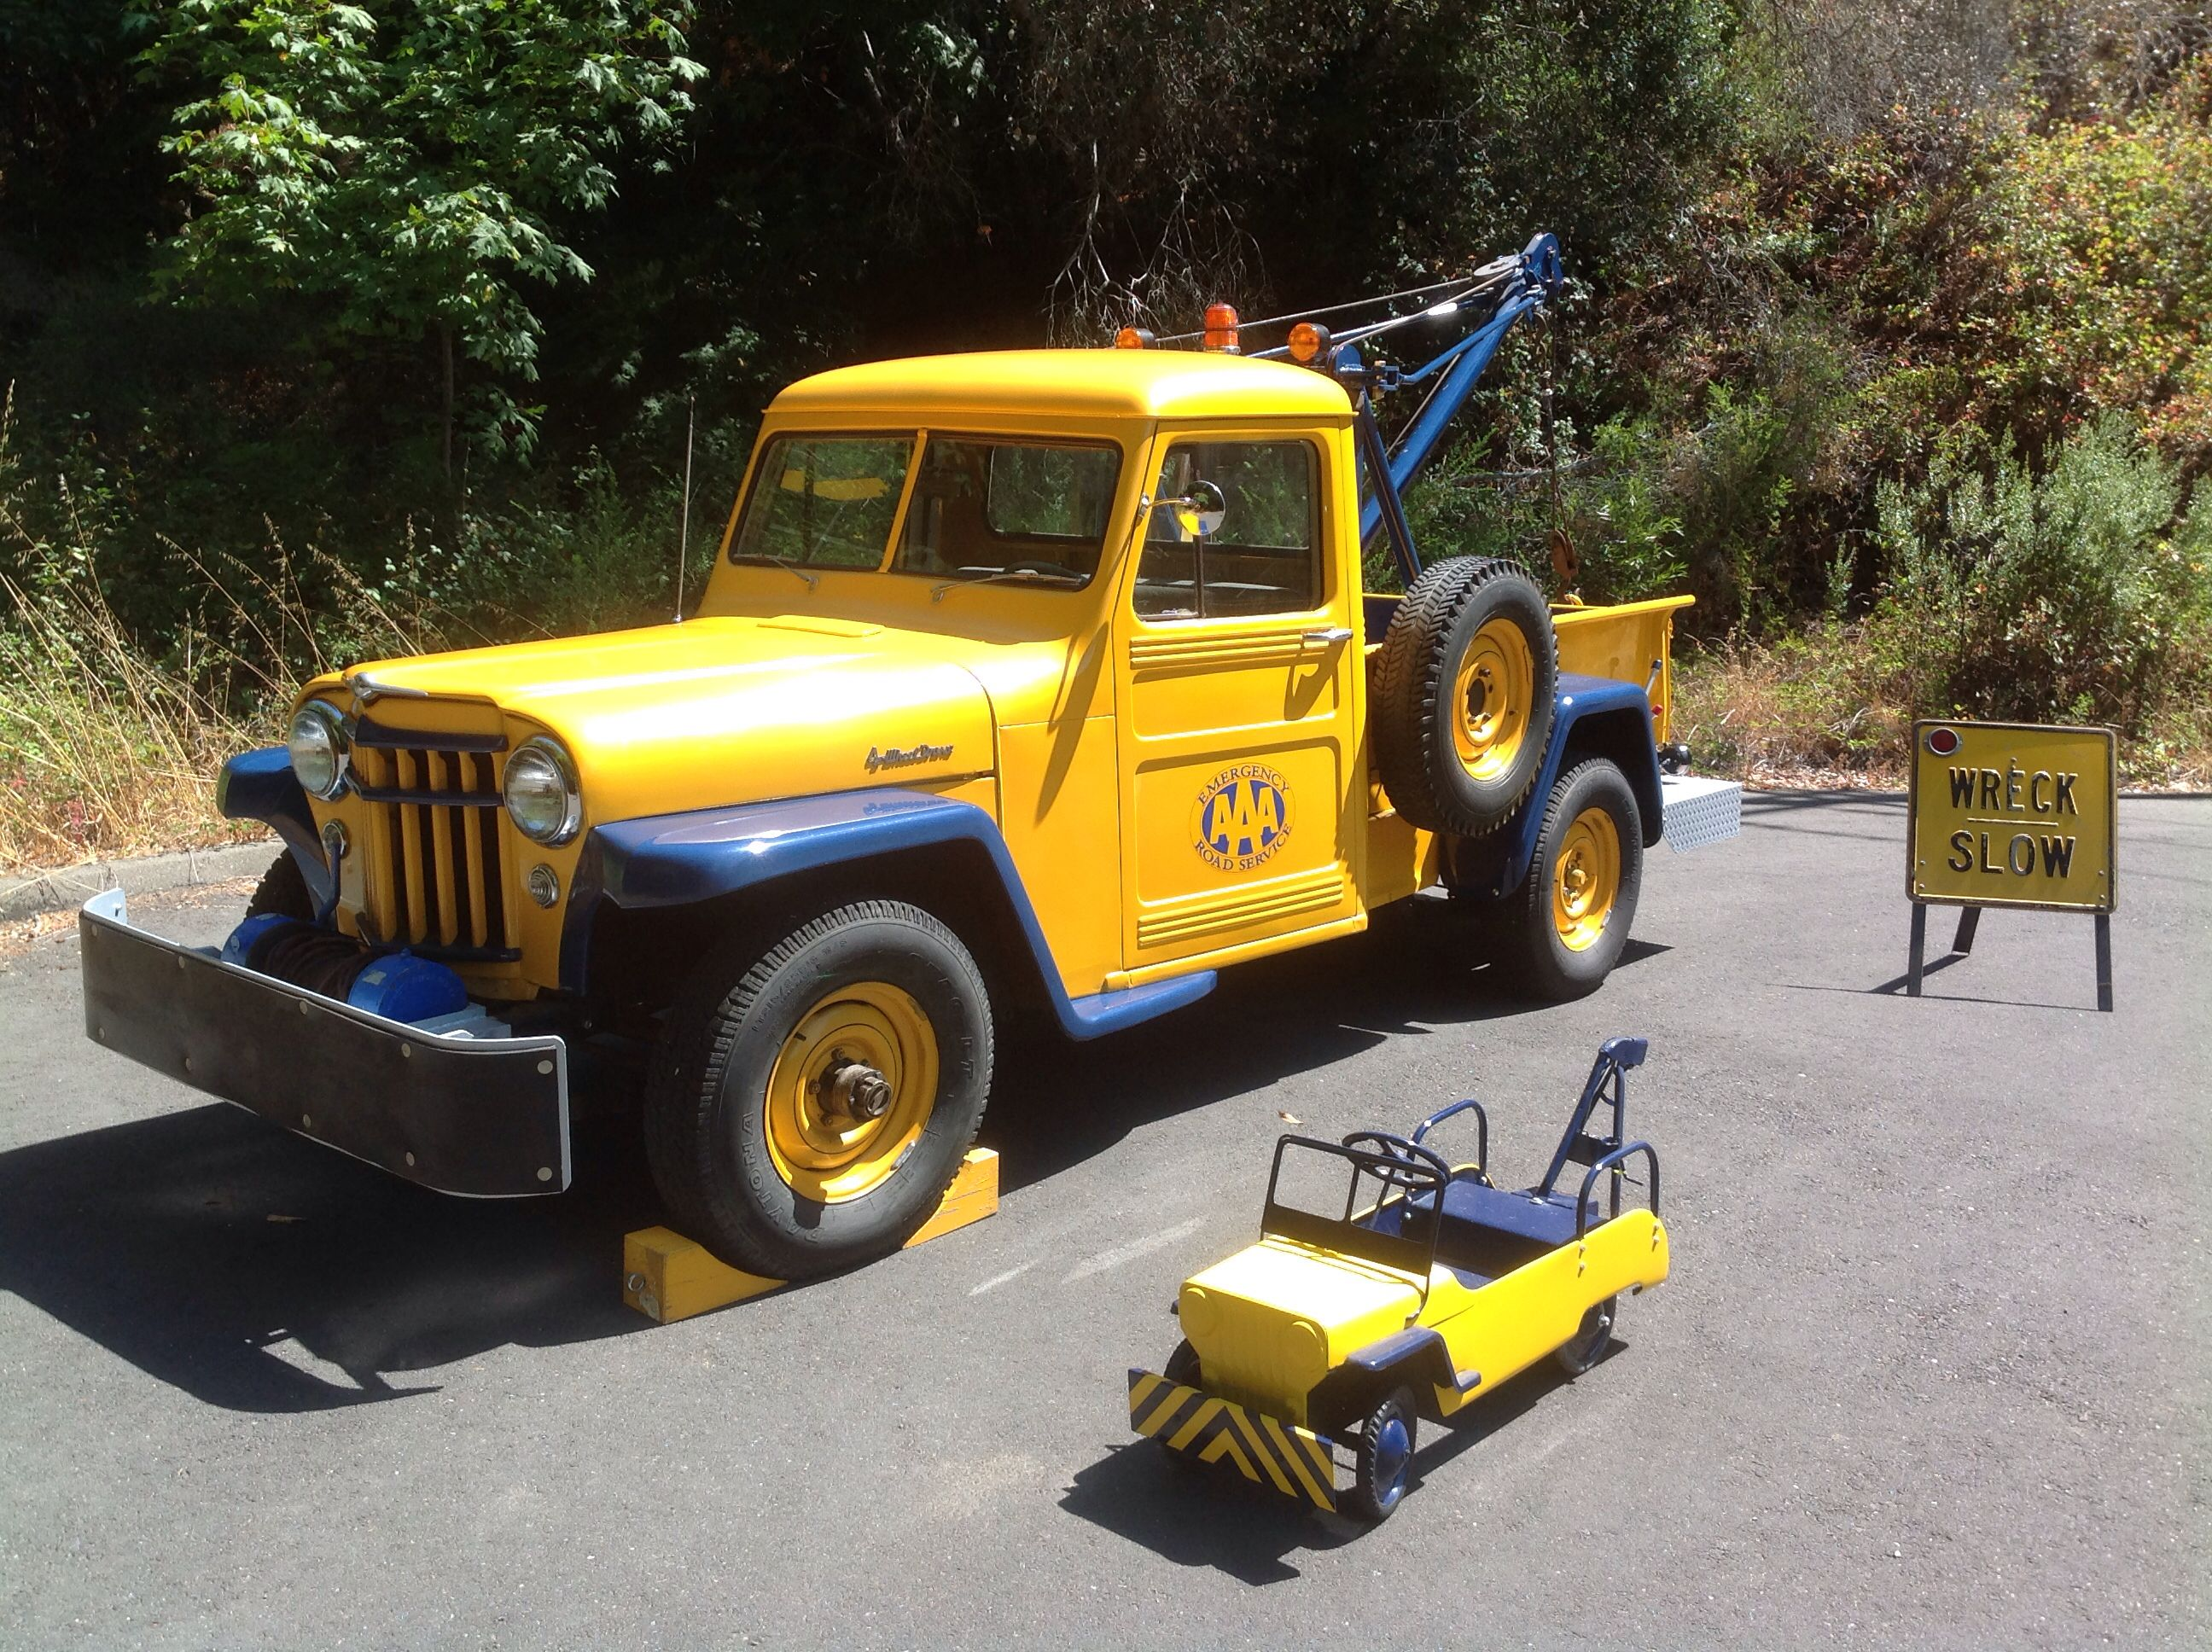 1956 Willys/Canfield Tow Truck w/ Hamilton pedal car Willys.